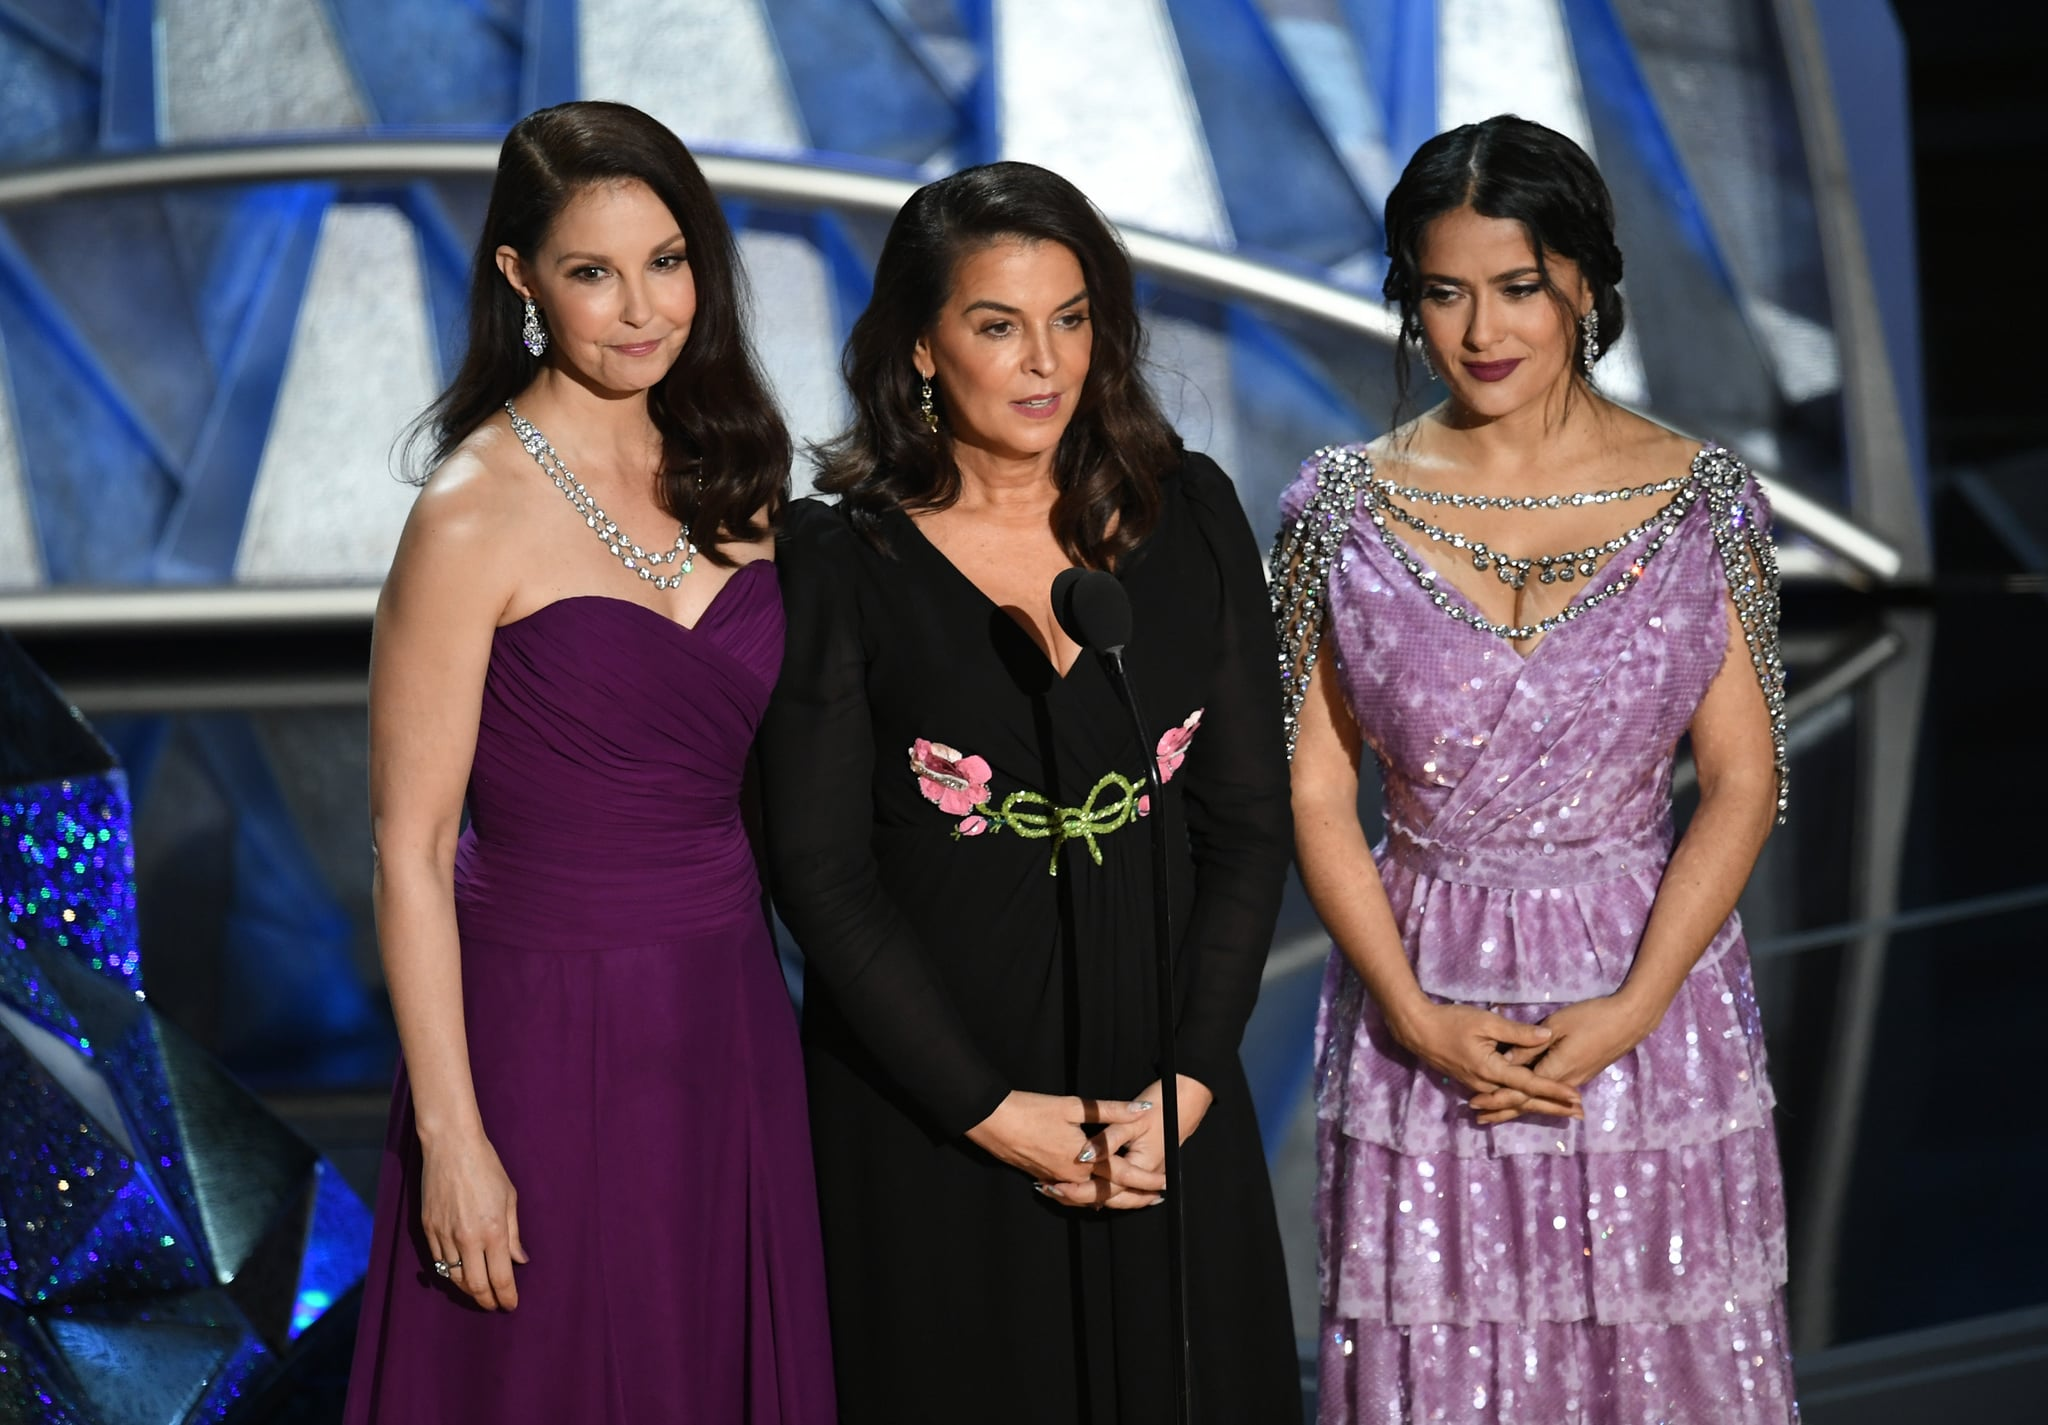 HOLLYWOOD, CA - MARCH 04:  (L-R) Actors Ashley Judd, Annabella Sciorra and Salma Hayek speak onstage during the 90th Annual Academy Awards at the Dolby Theatre at Hollywood & Highland centre on March 4, 2018 in Hollywood, California.  (Photo by Kevin Winter/Getty Images)